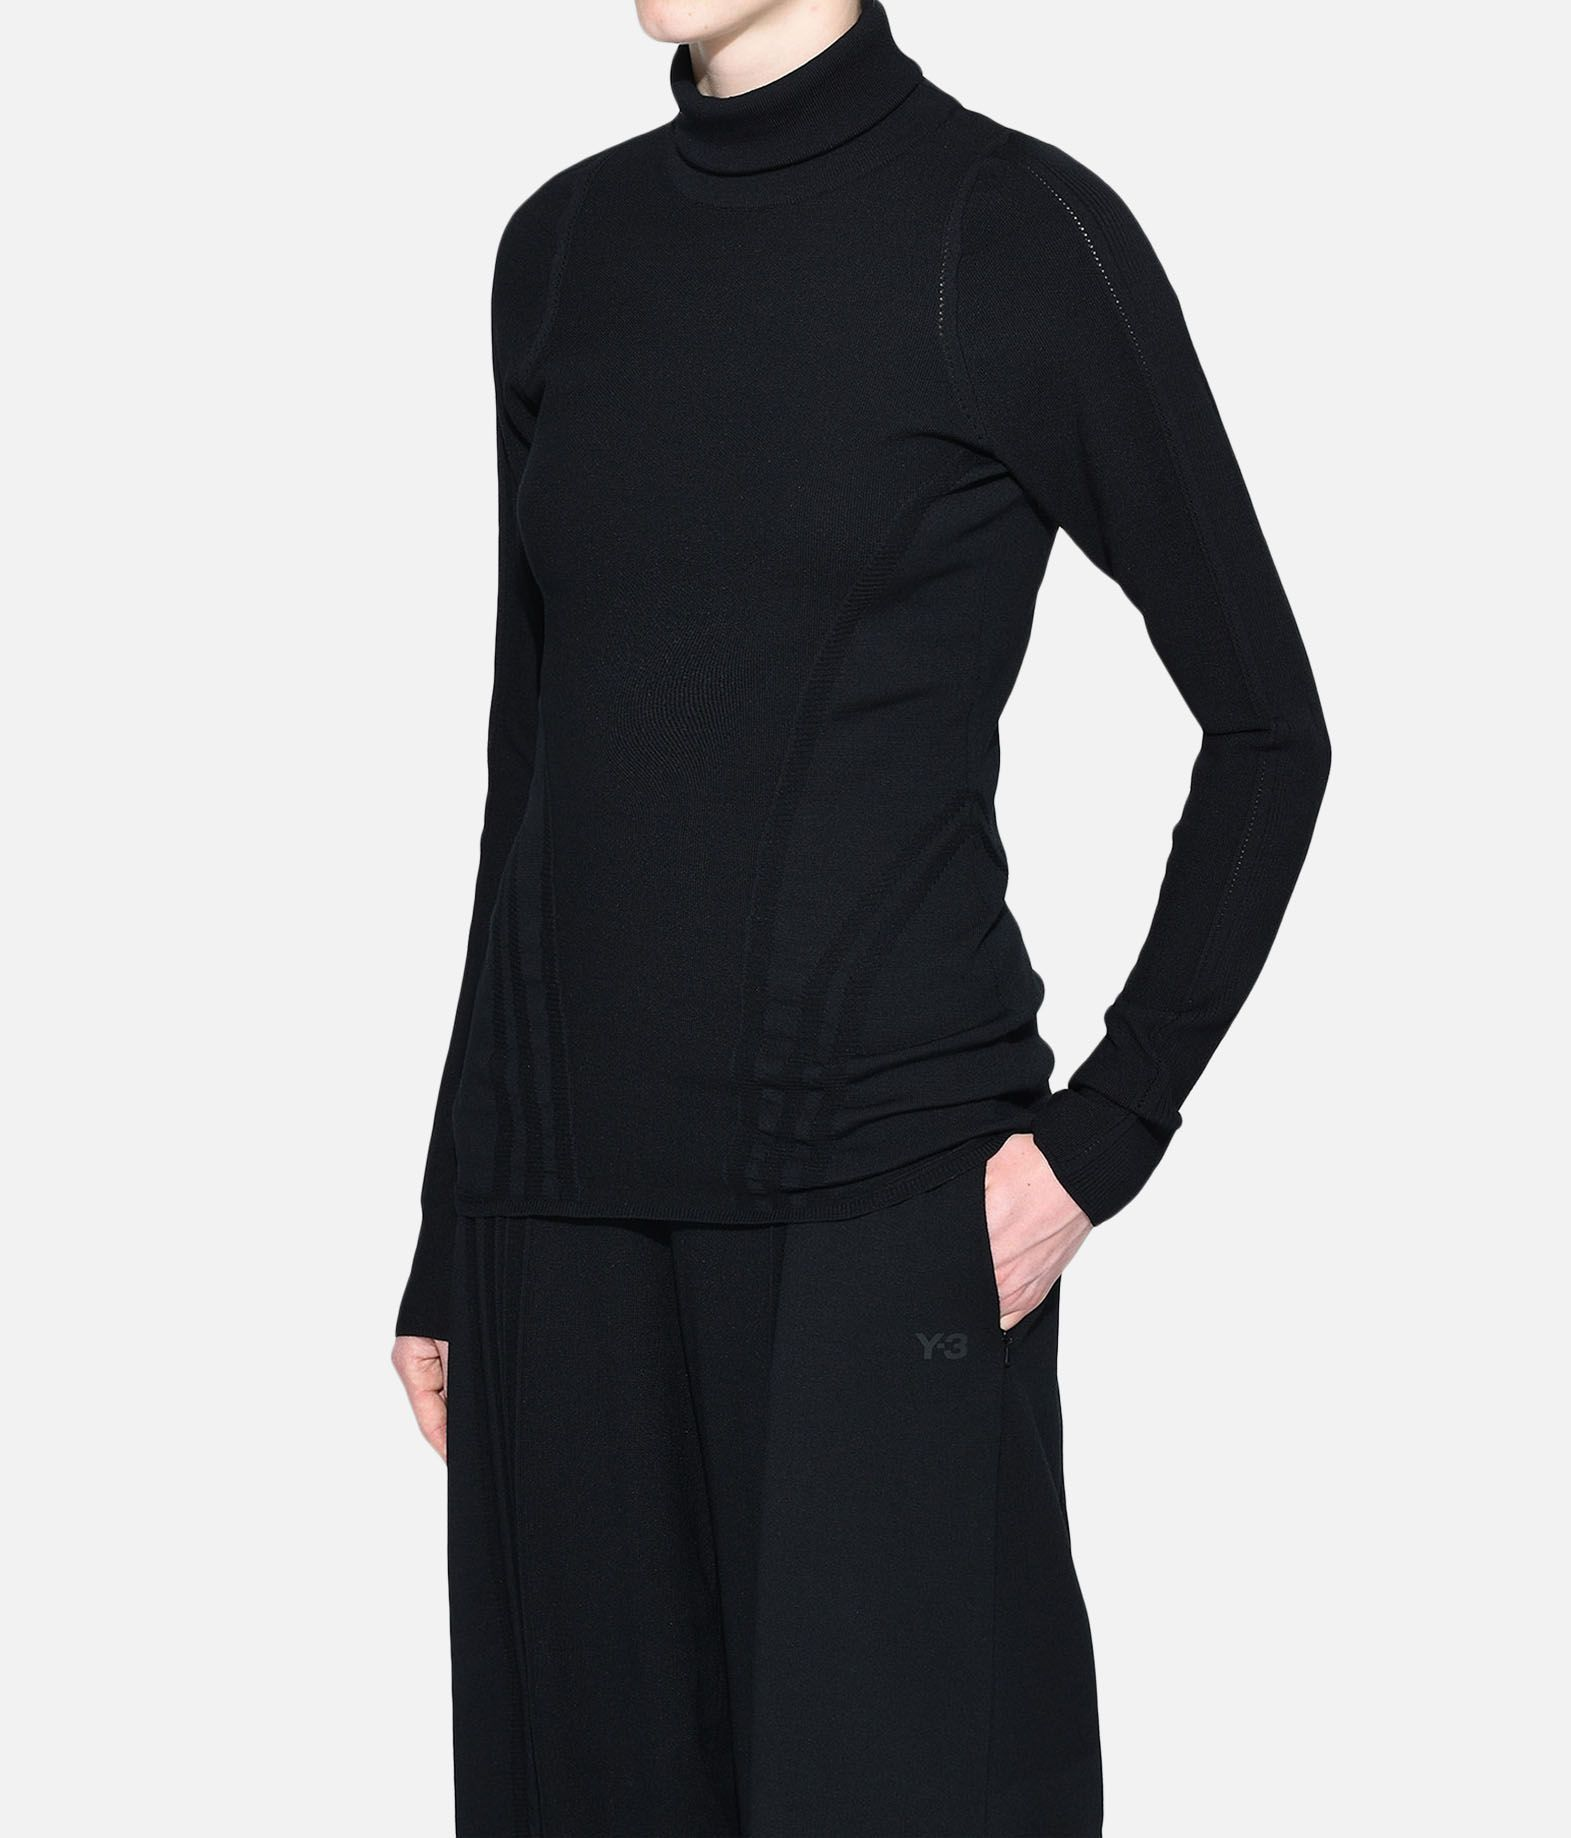 Y-3 Y-3 Tech Wool High Neck Tee Long sleeve t-shirt Woman e